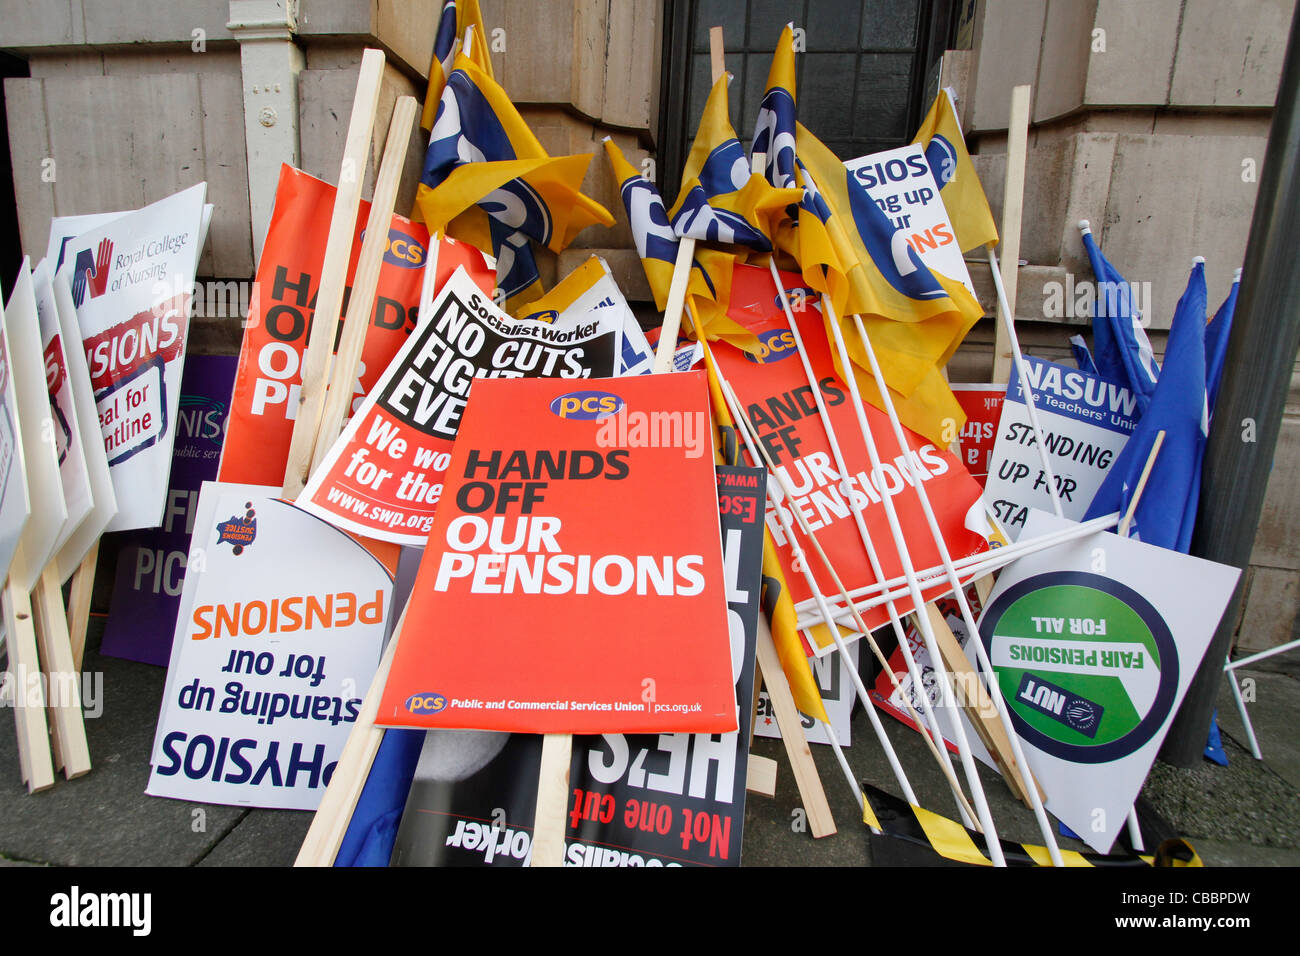 The rally at the Albert Hall after the March from the Recreation ground to the Albert Hall Unison - Pension Justice - Stock Image